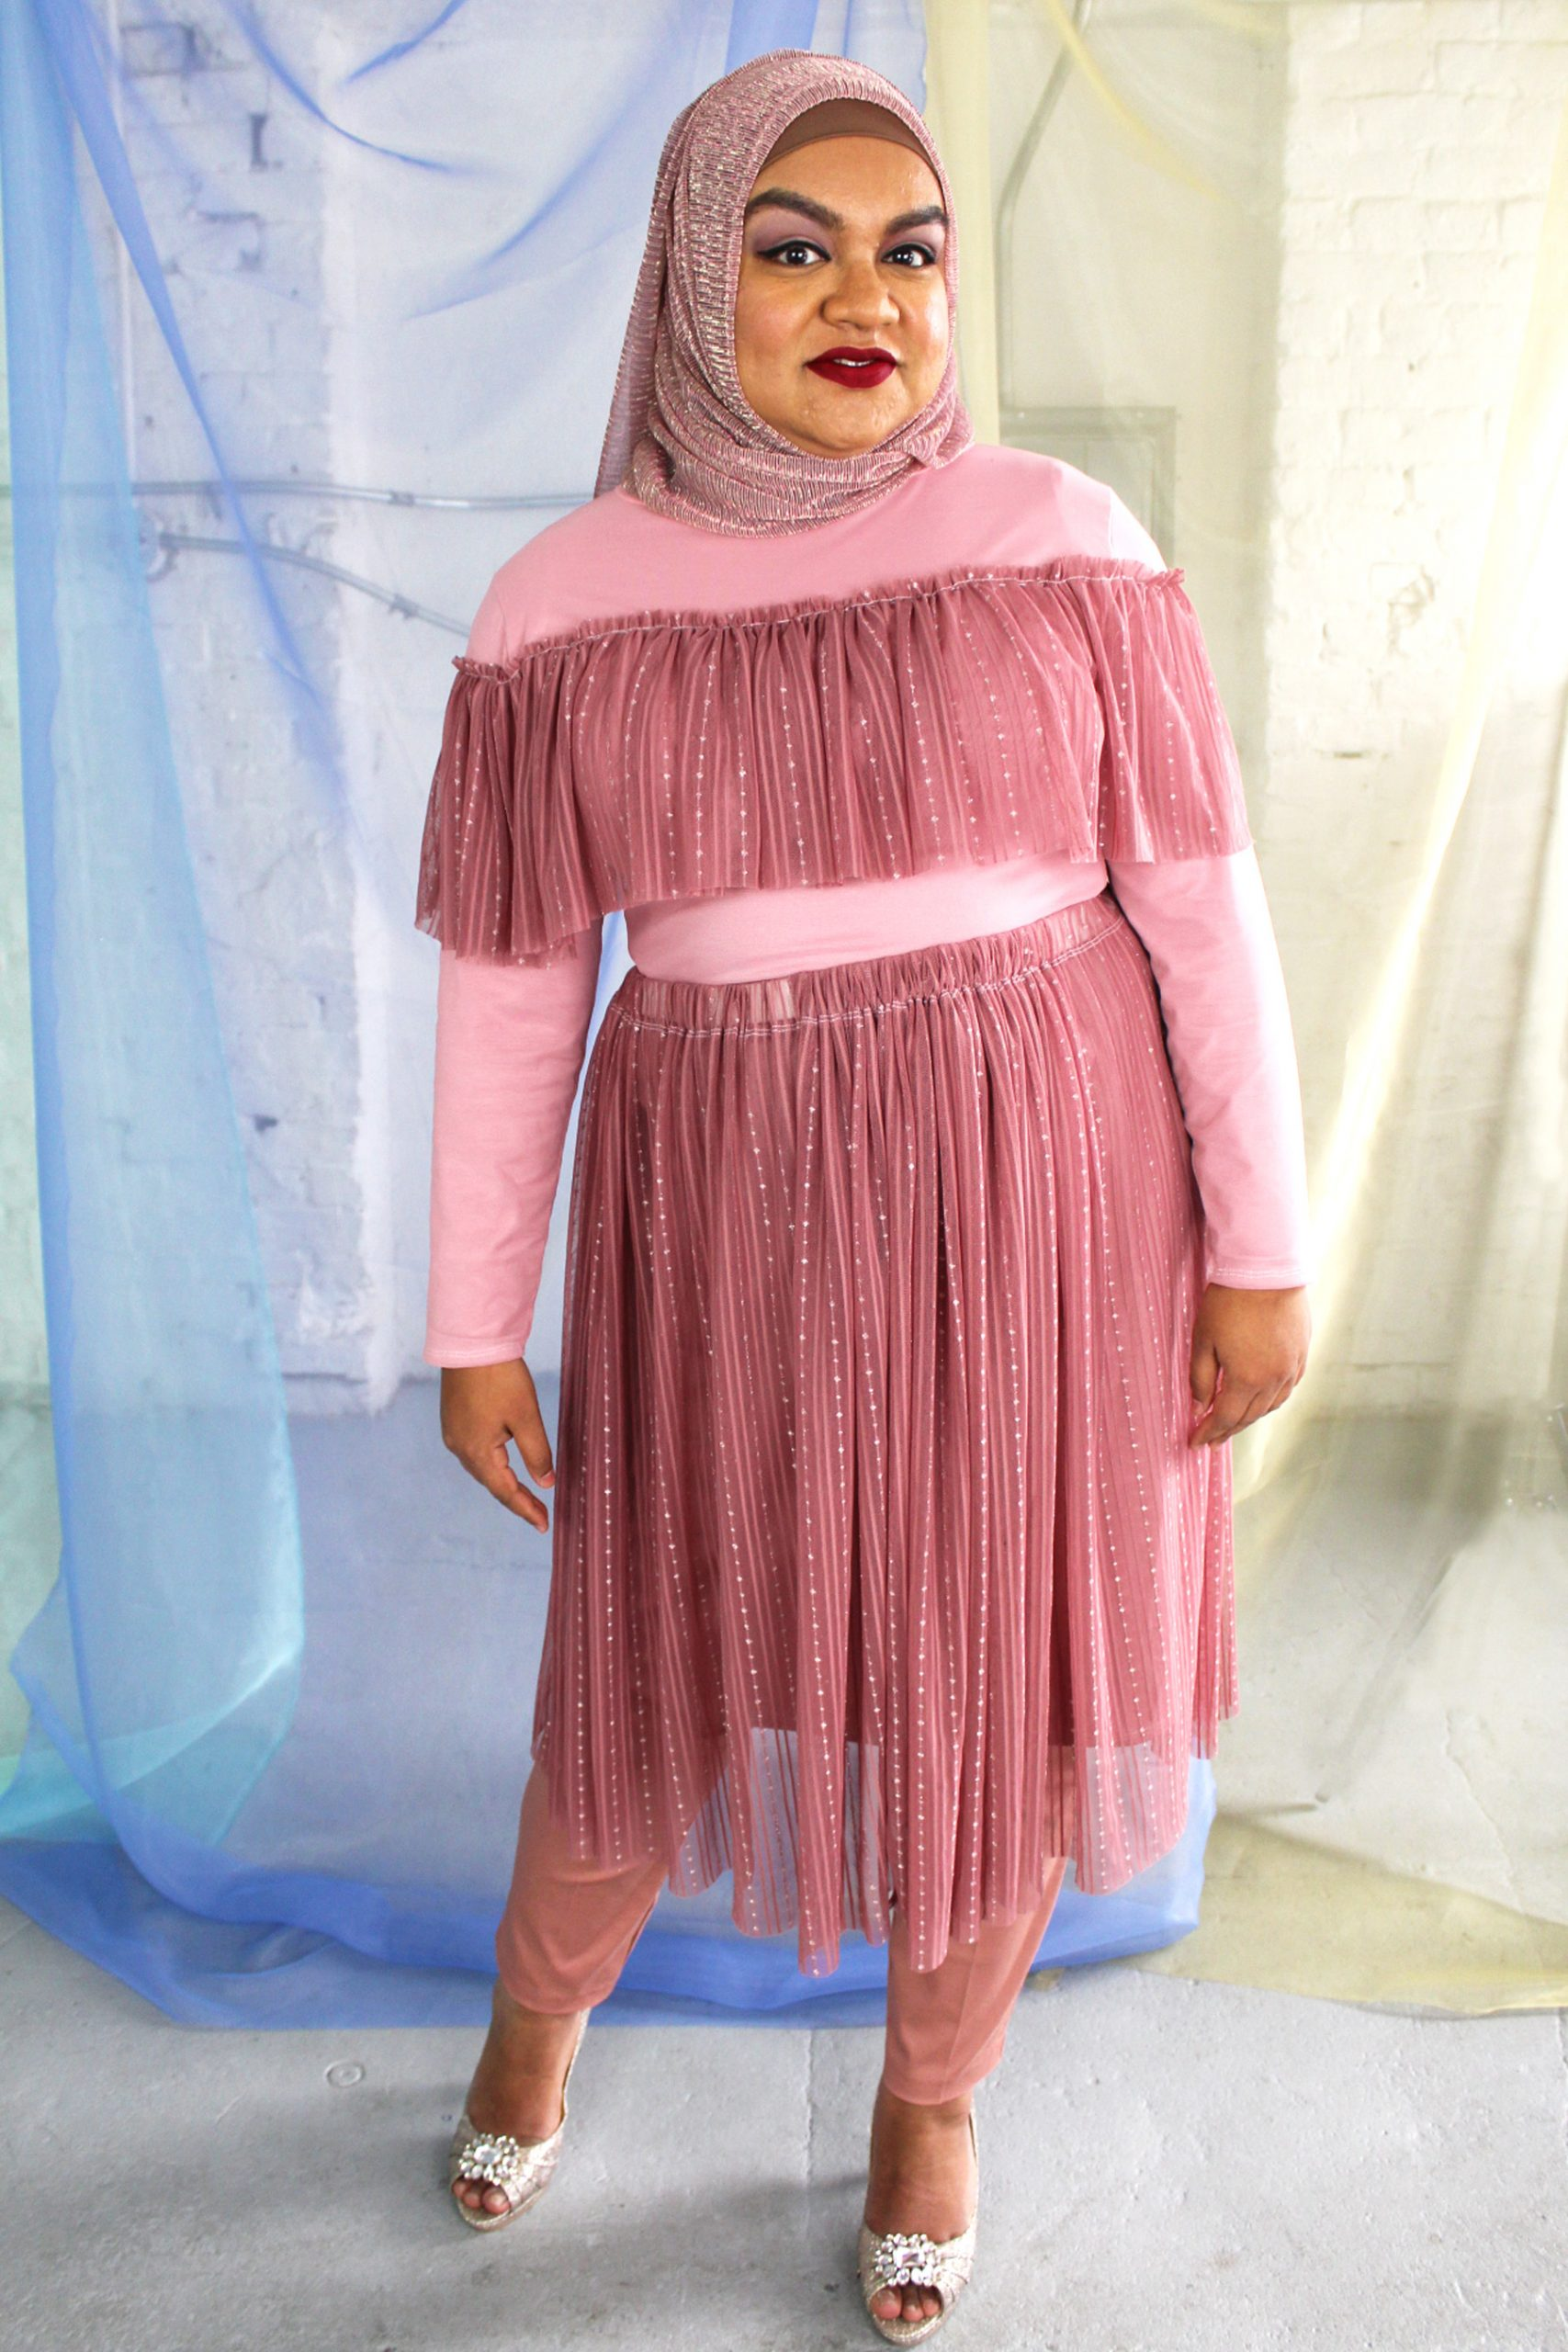 Hijabi plus size model wearing dusty rose pink mesh skirt smiling and happy, with matching long sleeve ruffle top